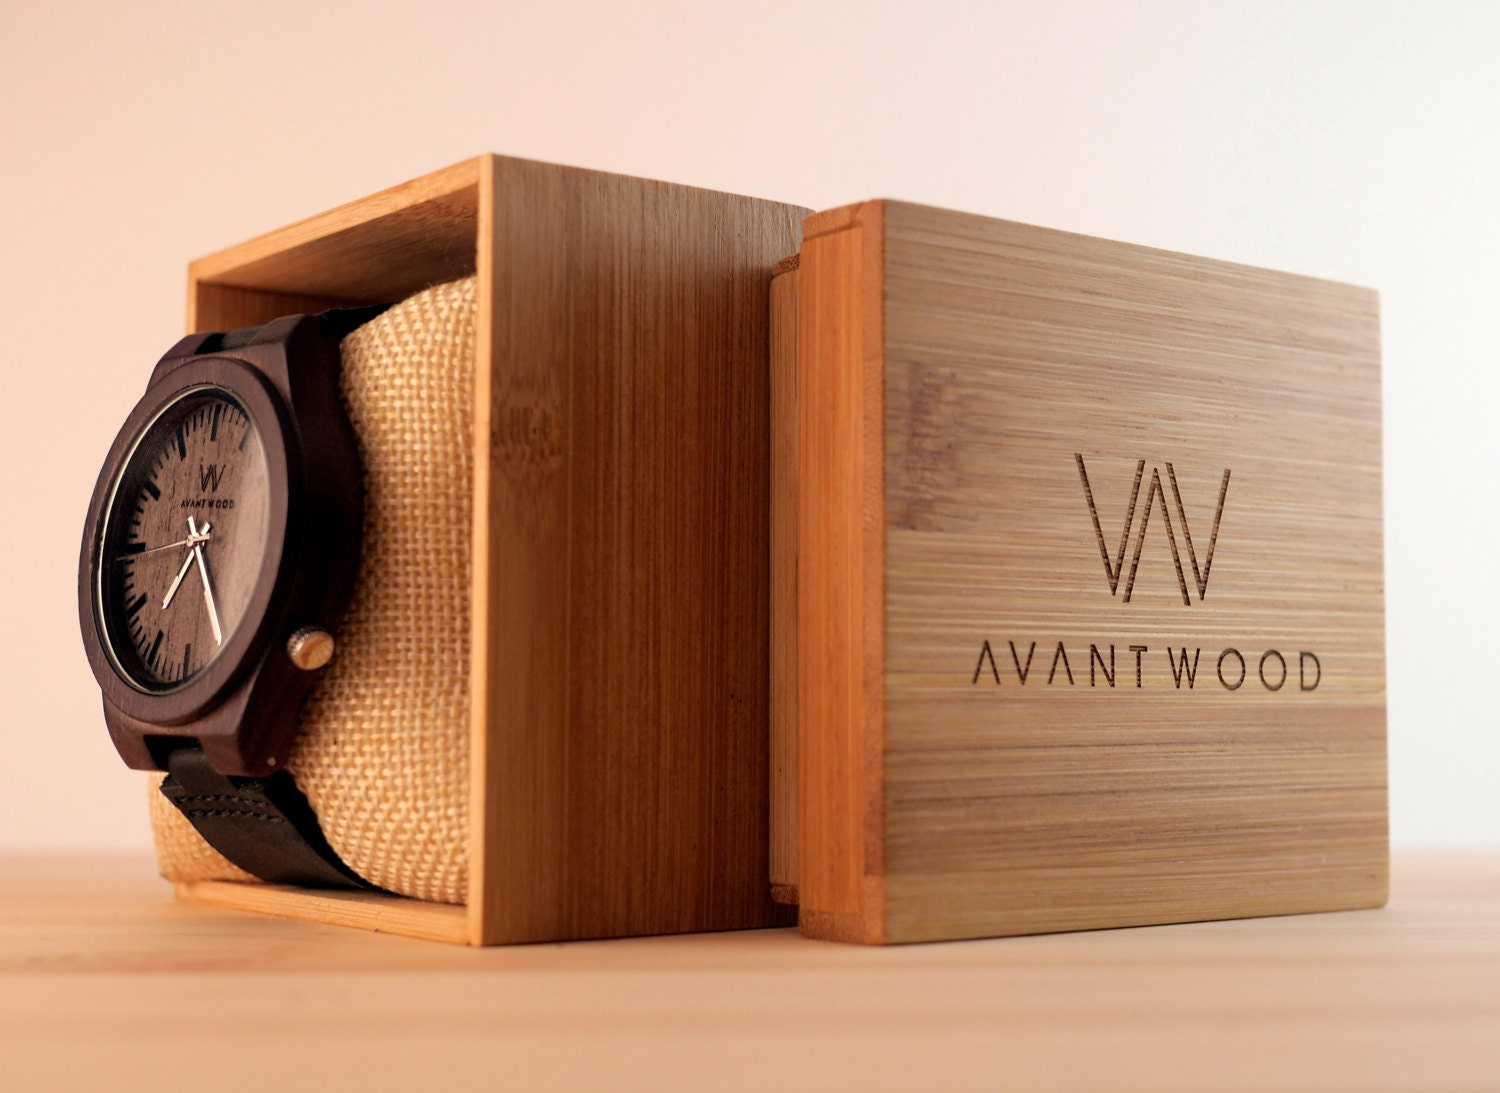 wood watch walnut wood watch wooden watch men s wood watch leather strap watch vintage men s watch groomsmen gift fiance gift wood box